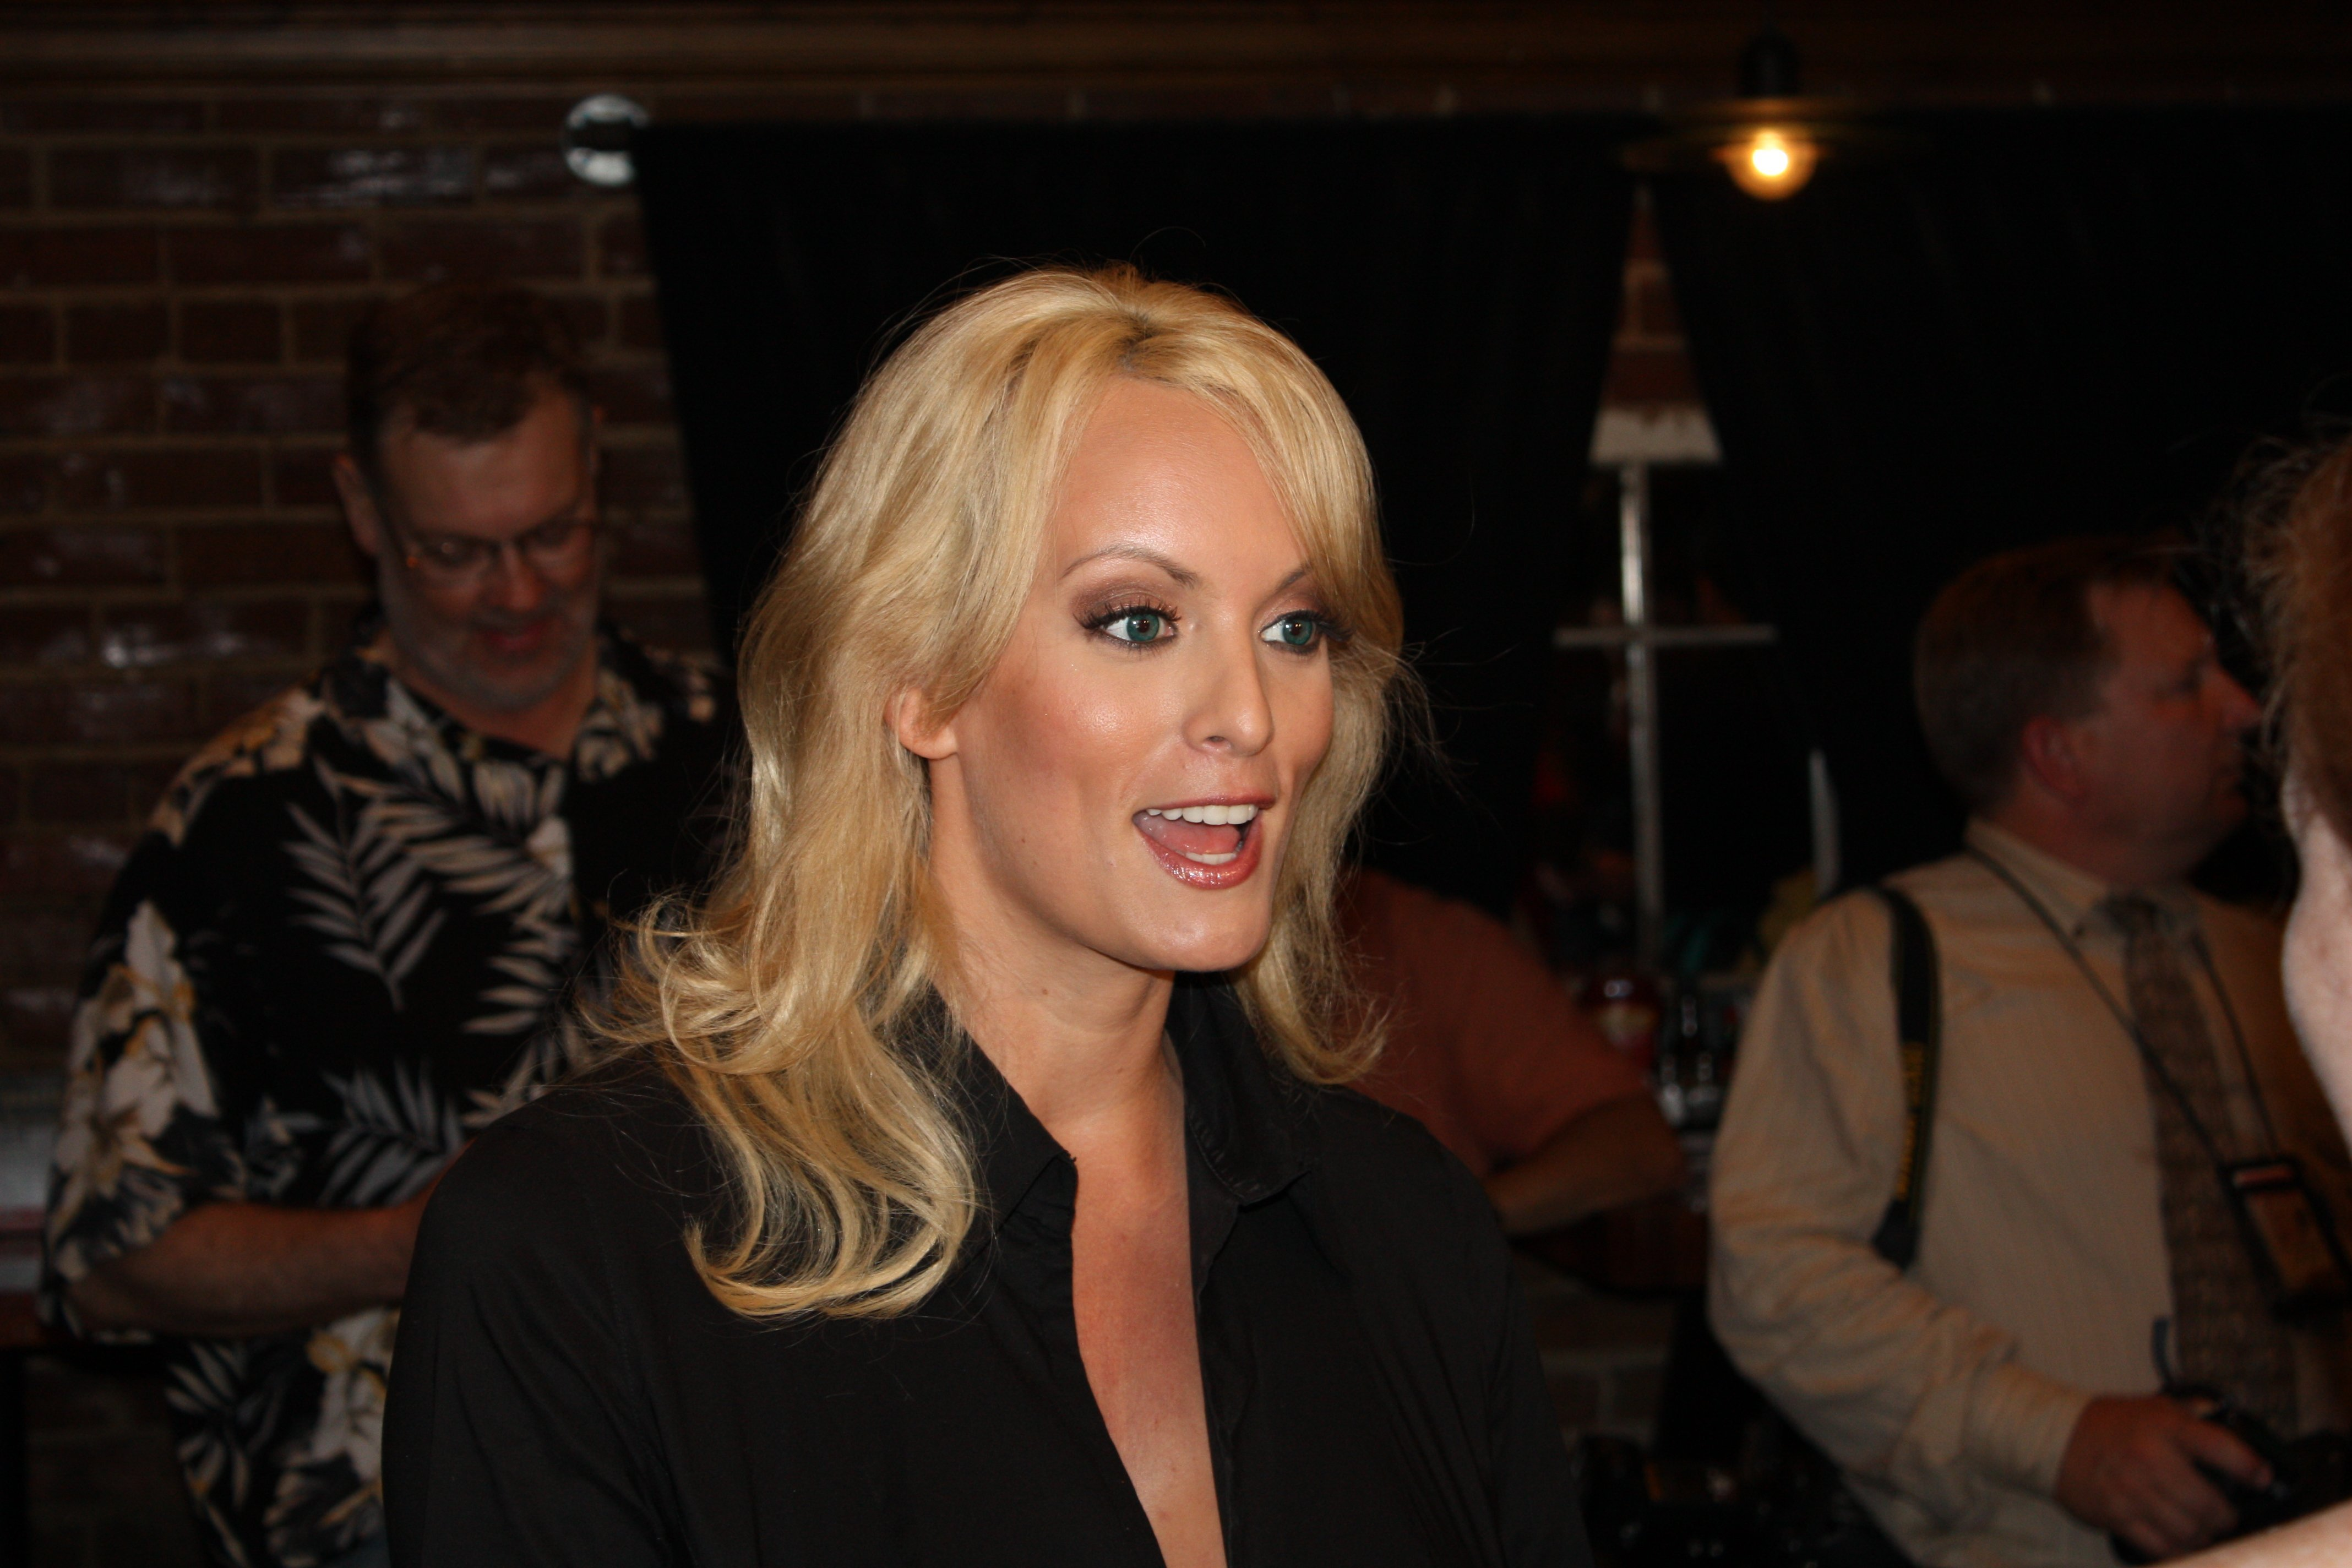 File- Stephanie Clifford, the porn star known as Stormy Daniels, discussed her alleged affair with Donald Trump during a May 2007 radio appearance, a well-known Florida radio personality told his listeners Friday.